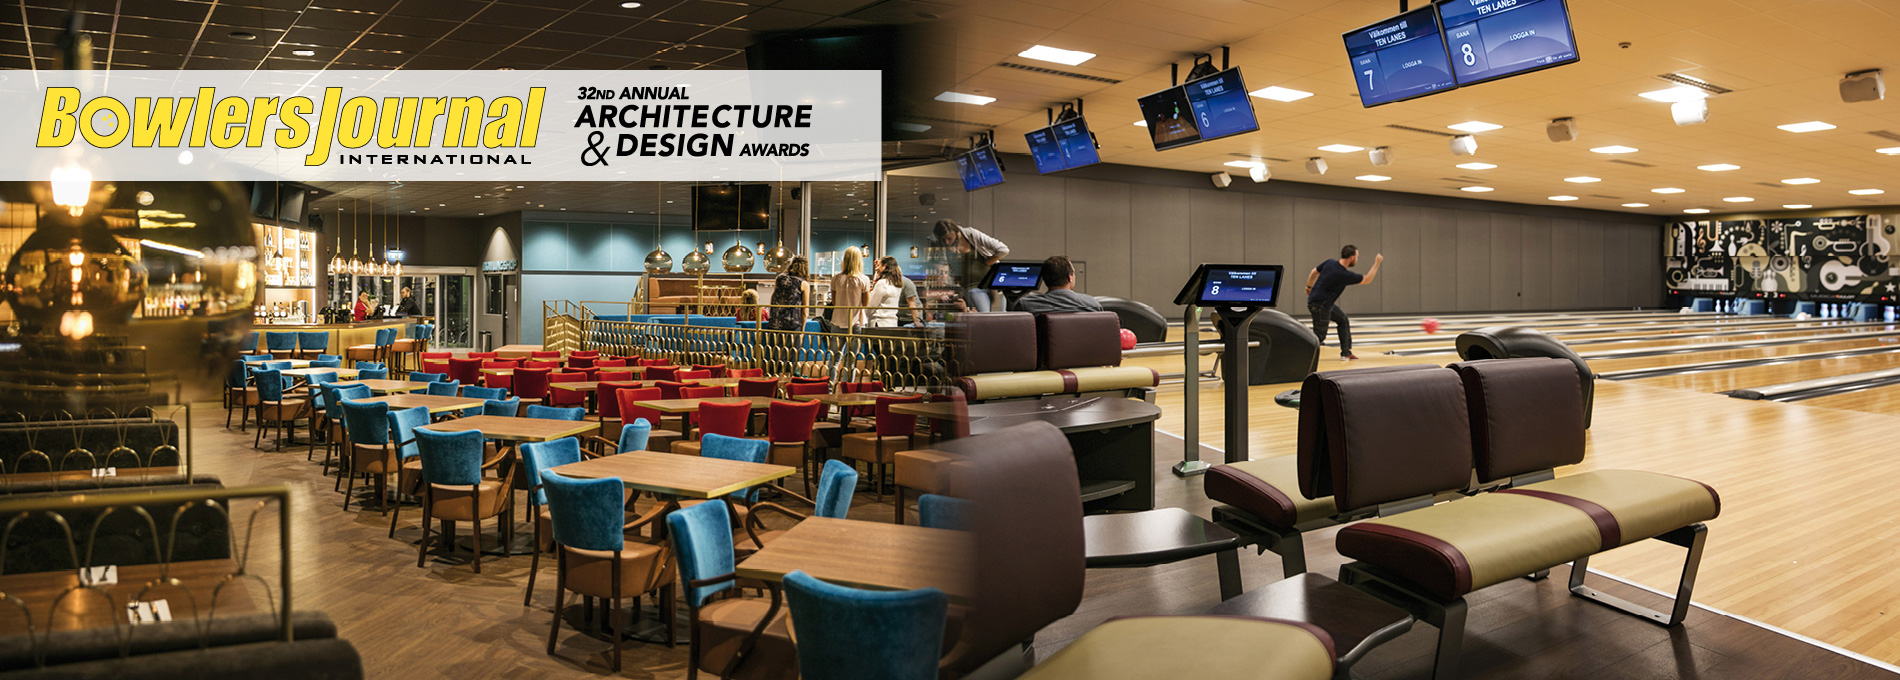 qubicaamf-bowling-32nd-architecture-and-design-awords-banner-TEN-LANES.jpg